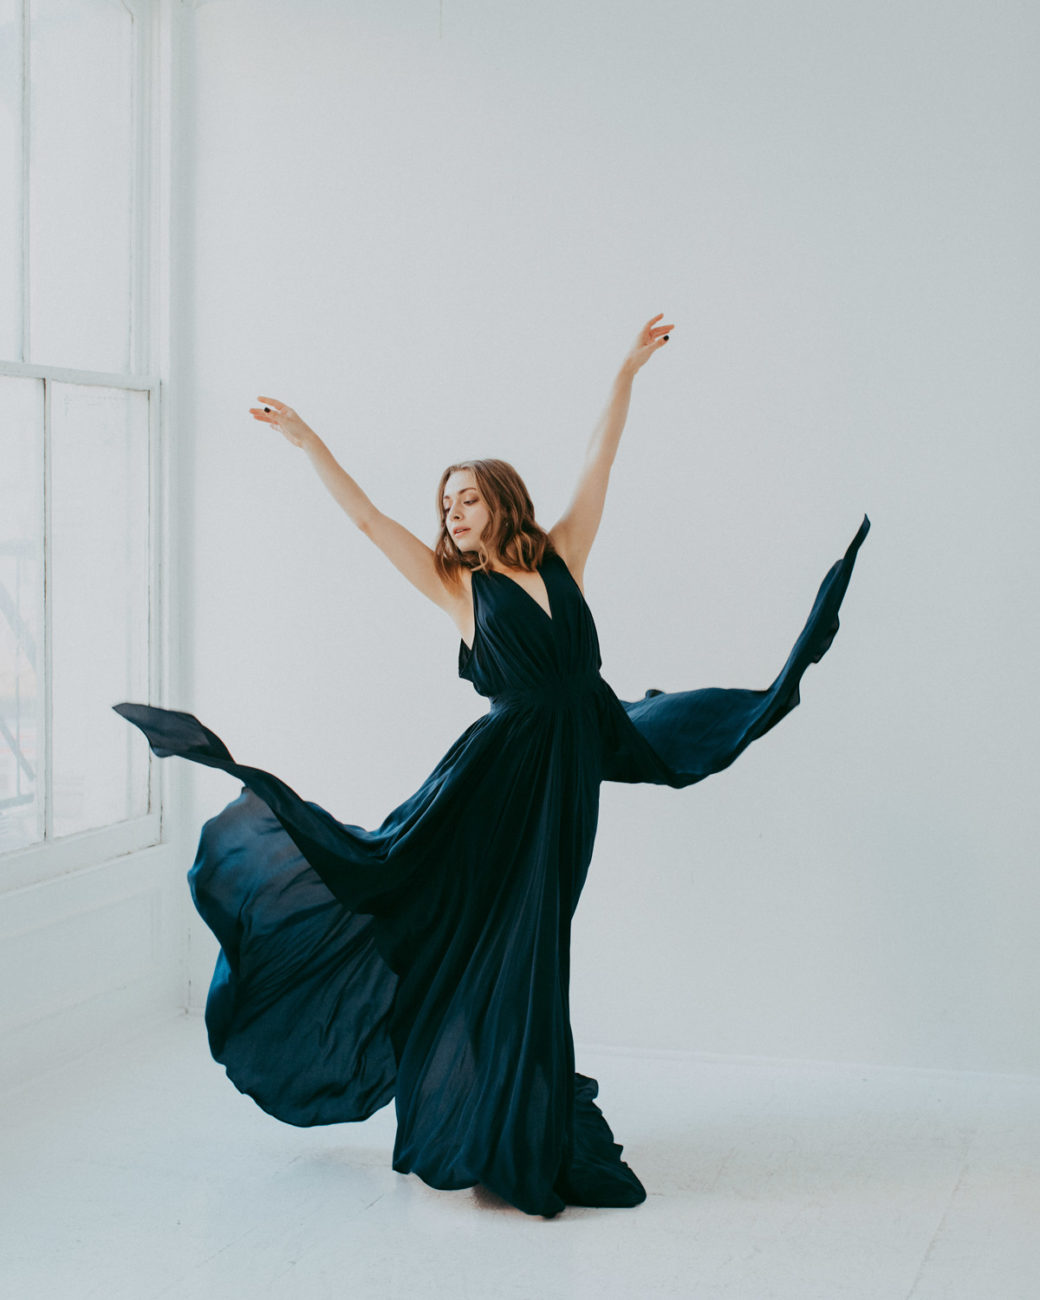 Steph dances in a studio in NYC wearing Jasmine Chong blue chiffon gown